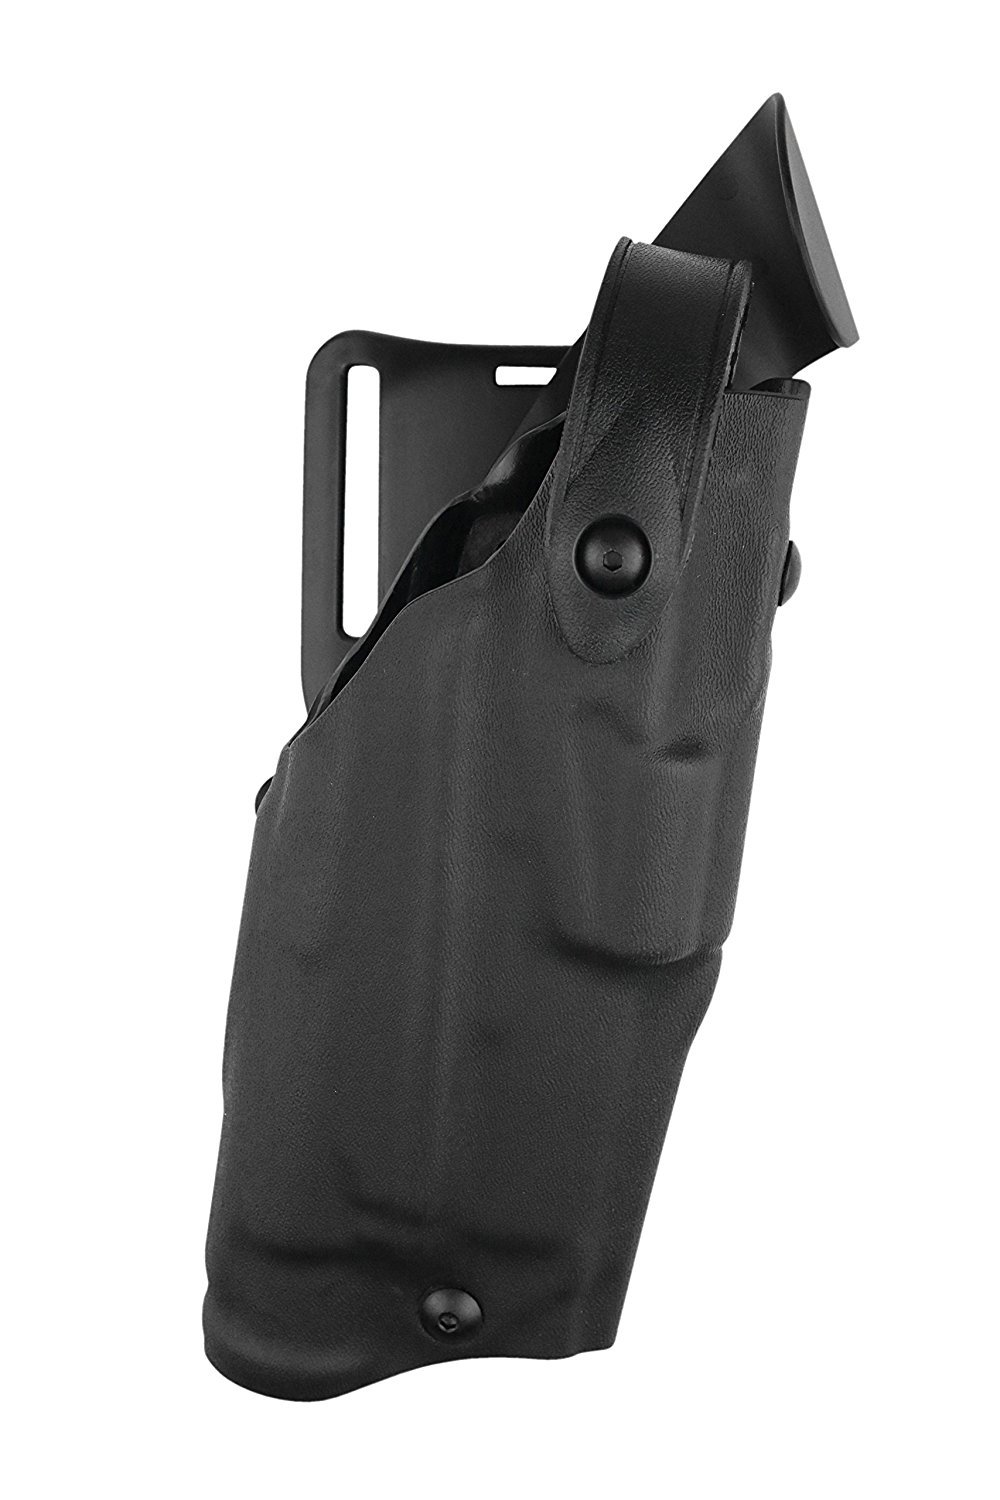 Safariland, 6360, ALS/SLS, Level 3 Retention Duty Holster, Right Hand